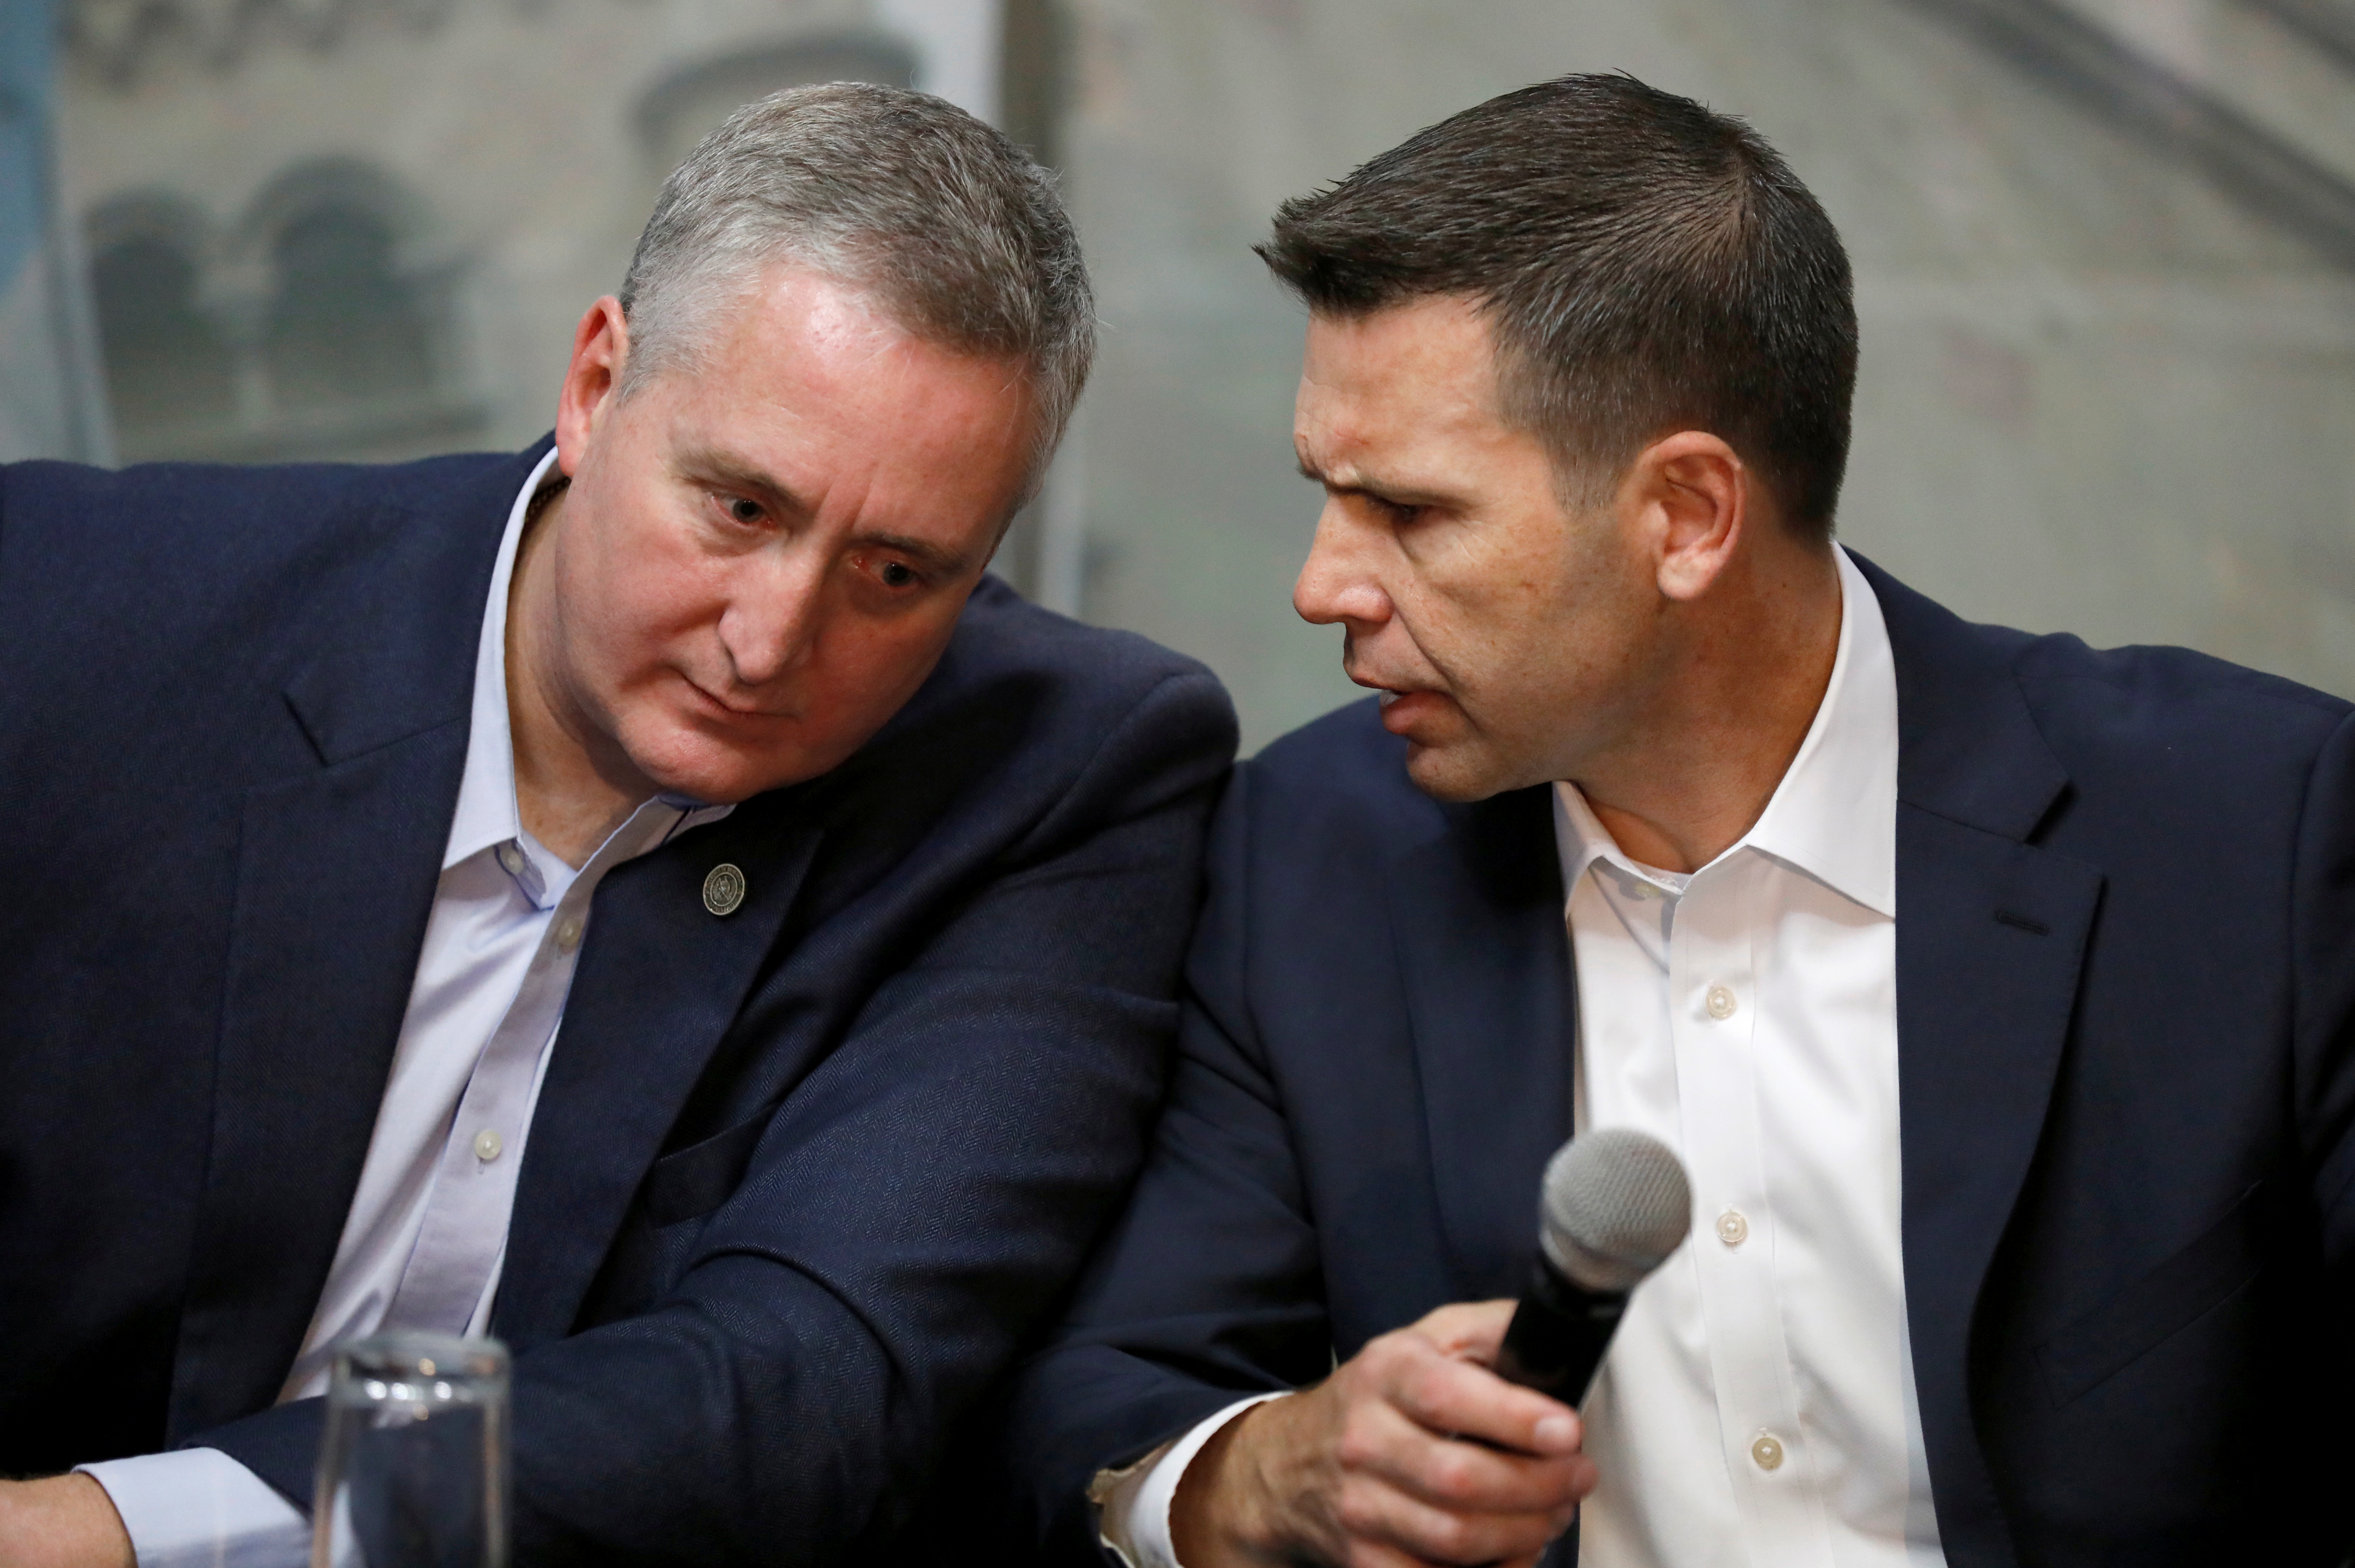 Acting U.S. Department of Homeland Security Secretary Kevin McAleenan and Guatemalan Interior Minister Enrique Degenhart attend a news conference in Guatemala City